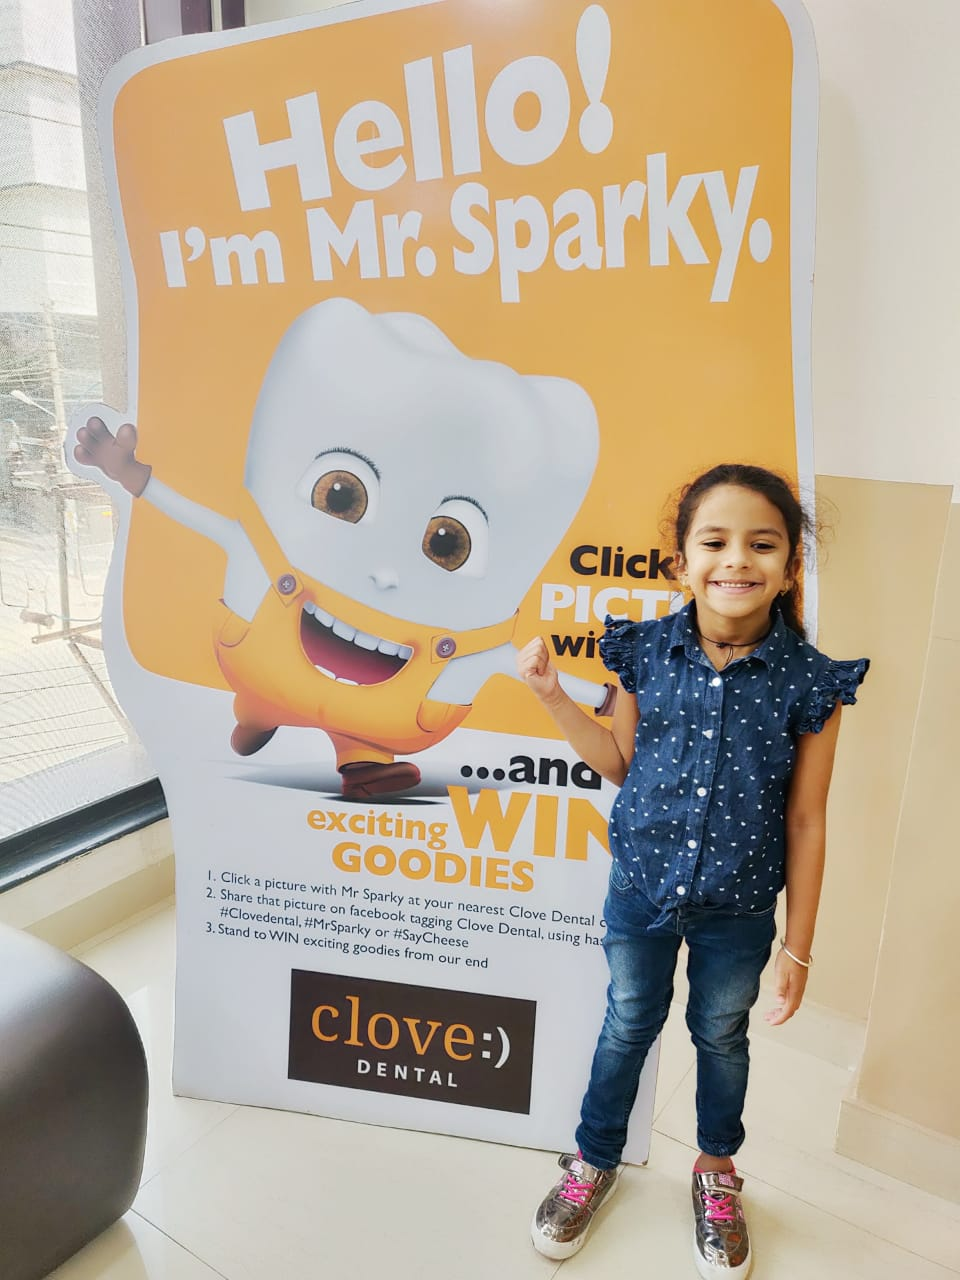 Clove Dental raising awareness on dental hygiene and its importance